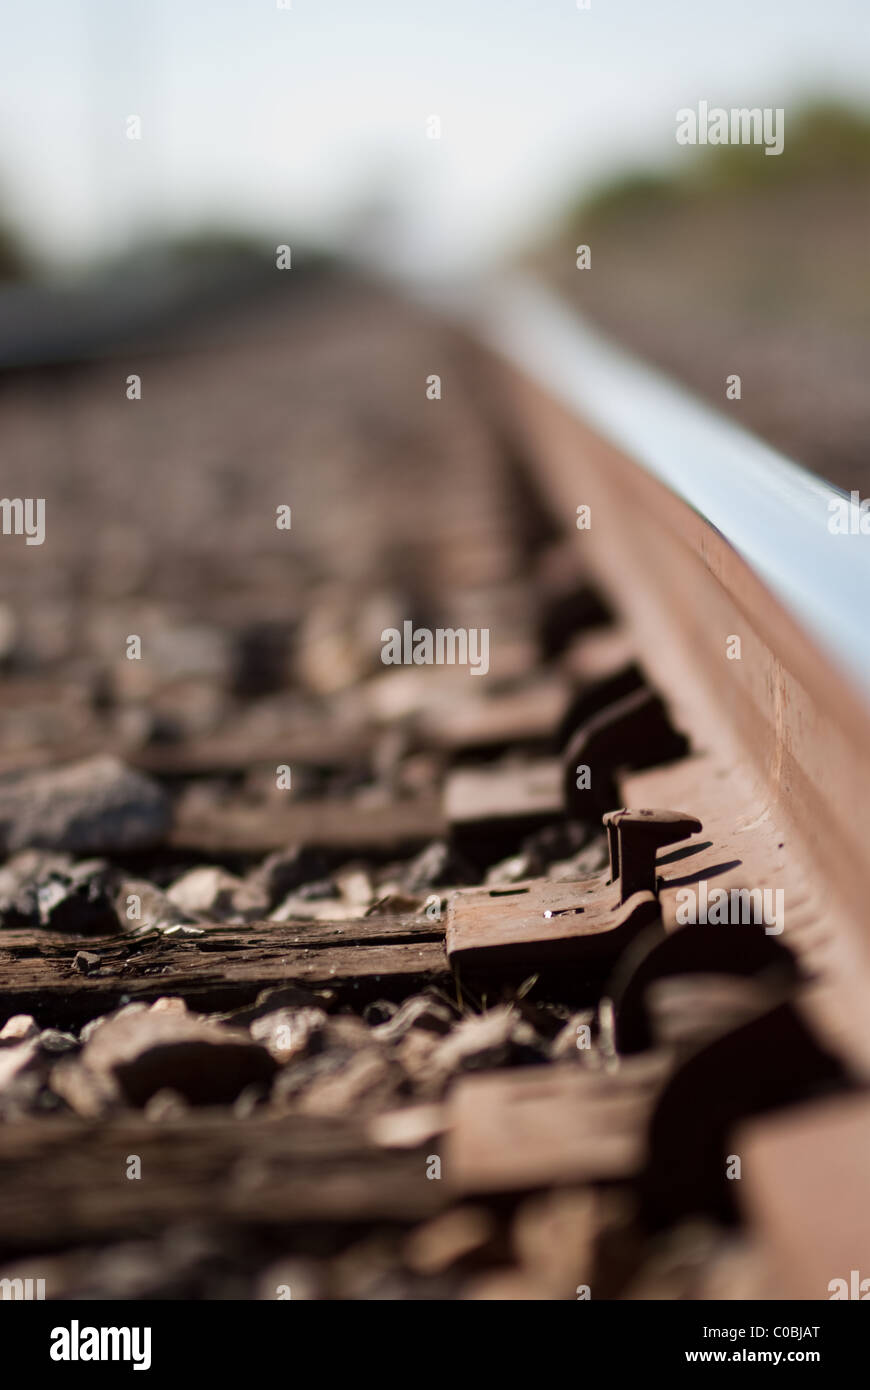 Train tracks, railroad. Stock Photo